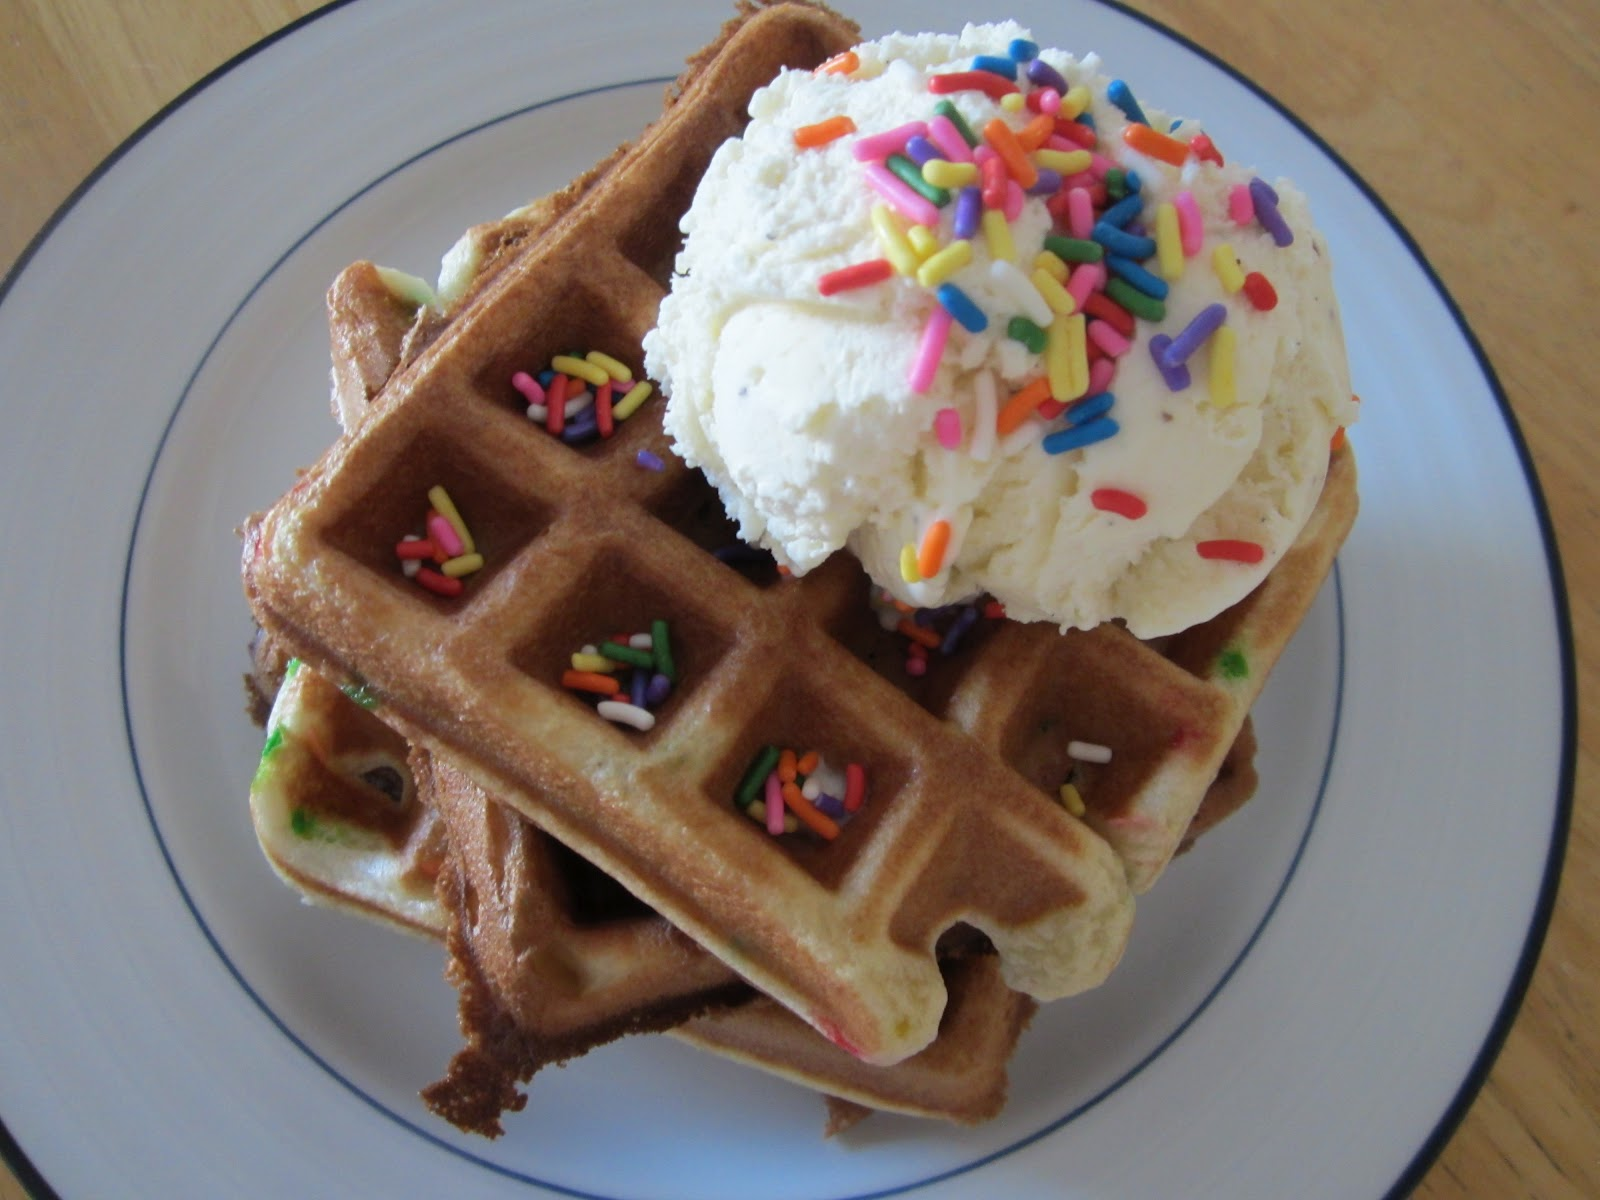 I Saw A Recipe On Pinterest For Cake Waffles Not Too Long Ago The Is Simple Get Boxed Mix Follow Instructions As Normal